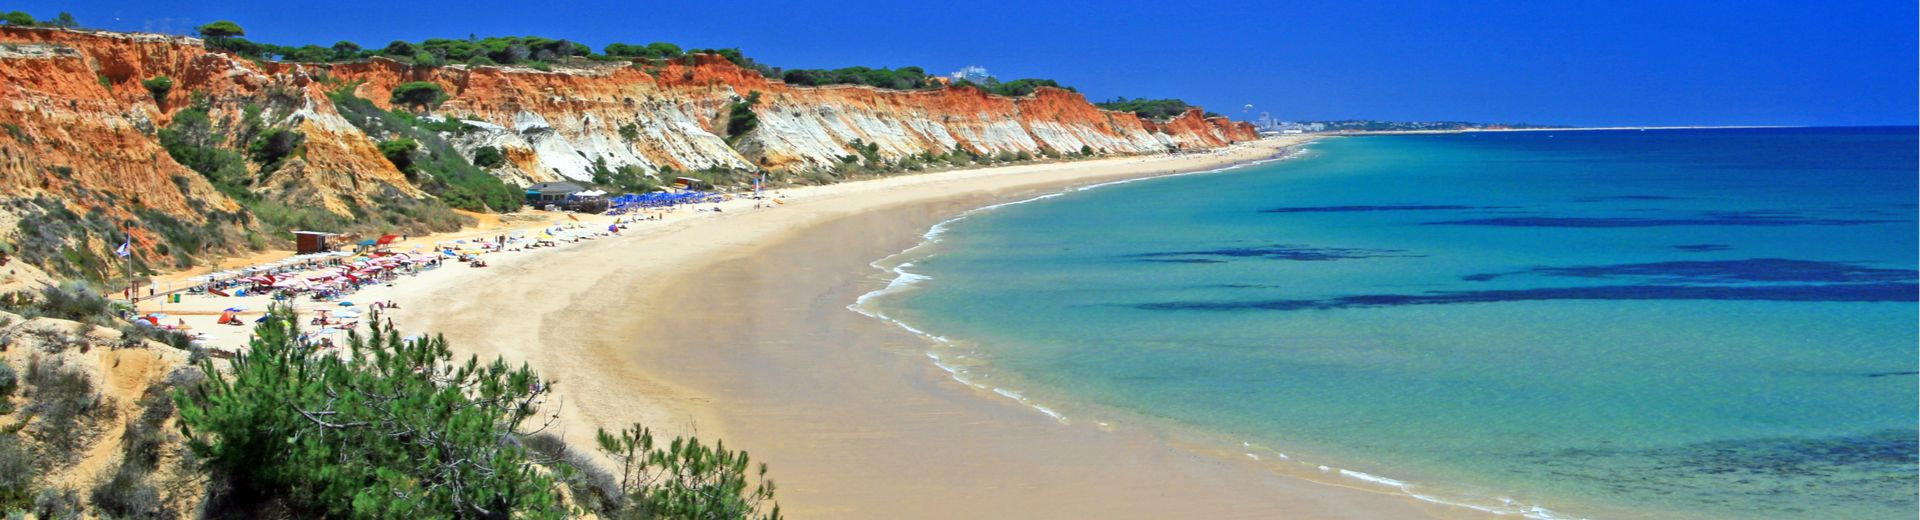 All Inclusive an der Algarve